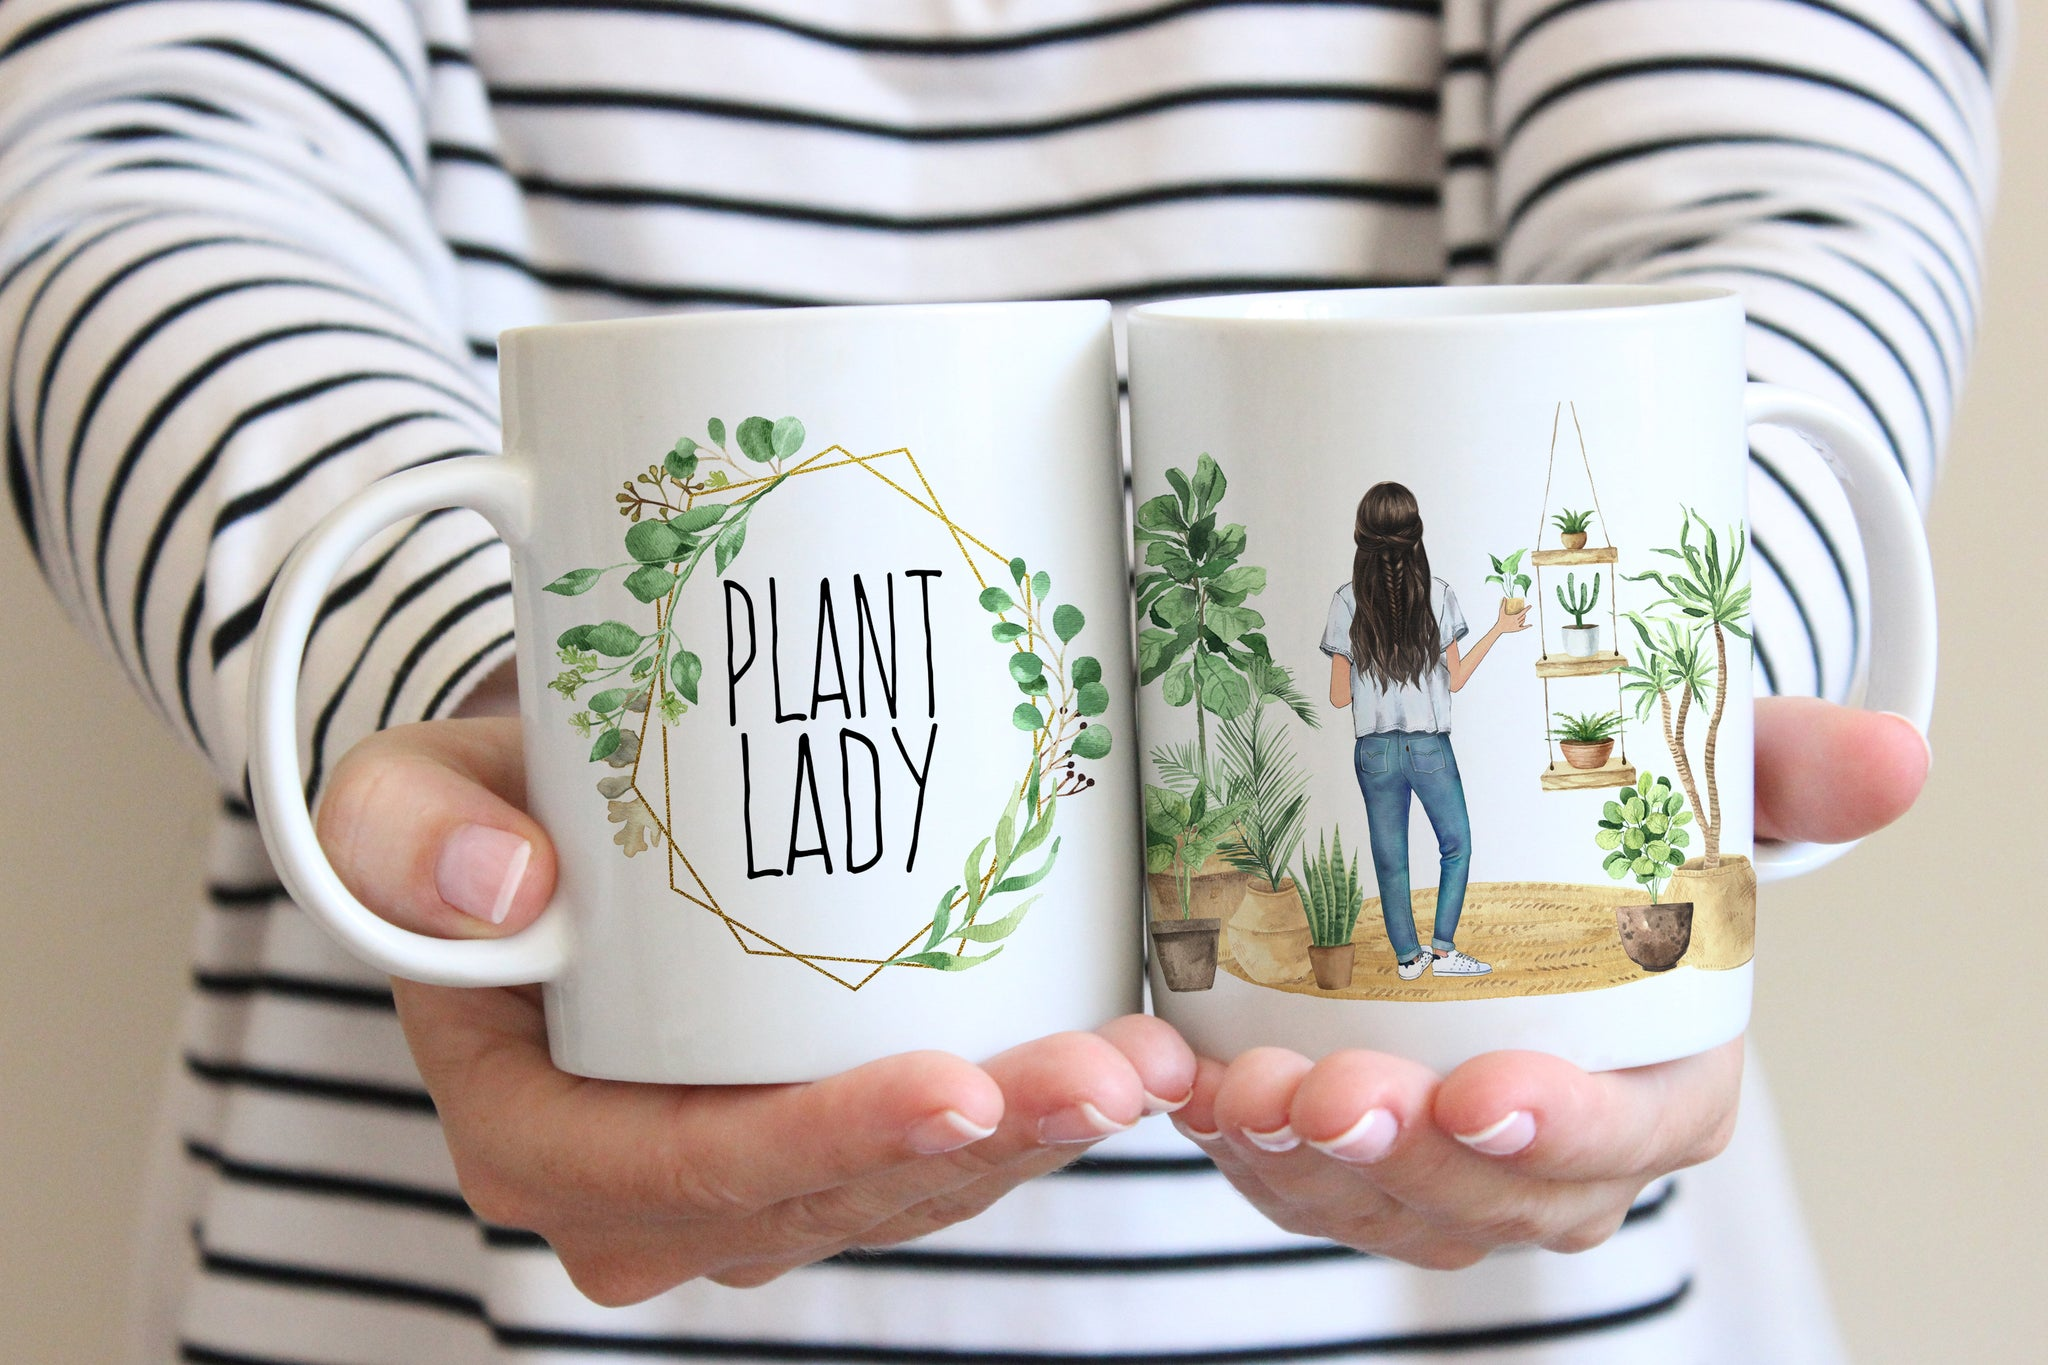 Gifts For Plant Lovers | Plant Lady Mug | Ollie + Hank